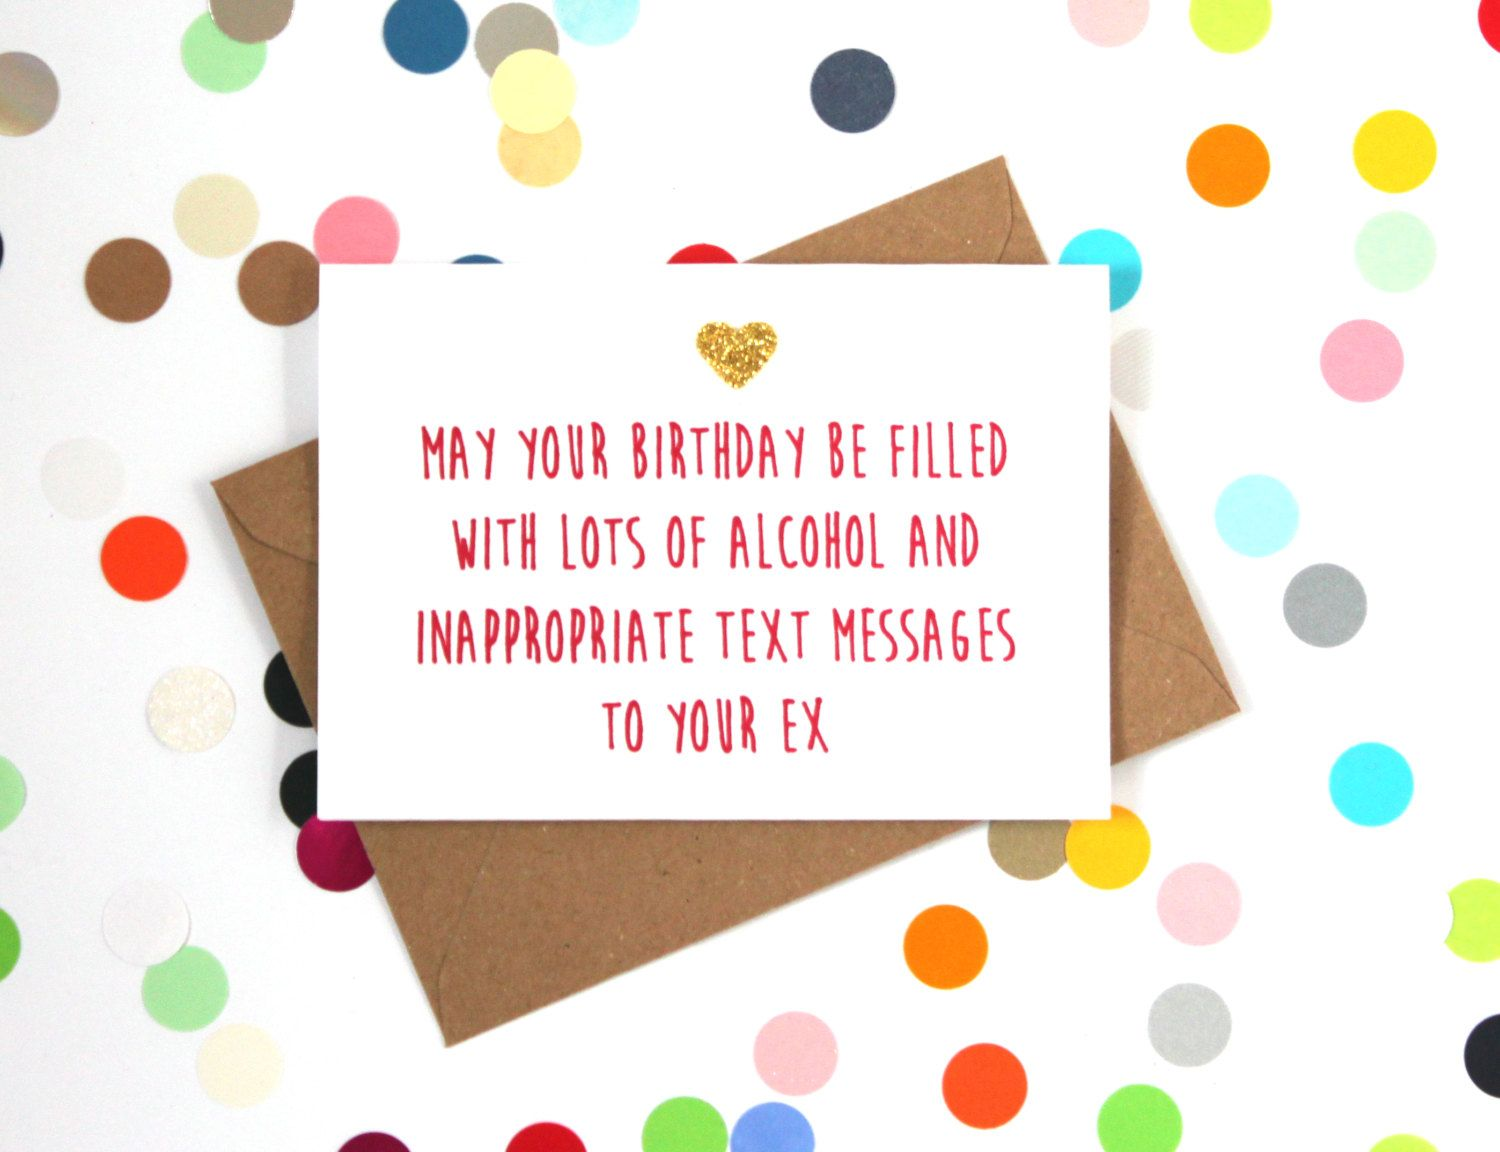 Funny Birthday Card May Your Birthday Be Filled With Lots Of Etsy Birthday Cards Funny Friend Funny Birthday Cards Card Making Birthday